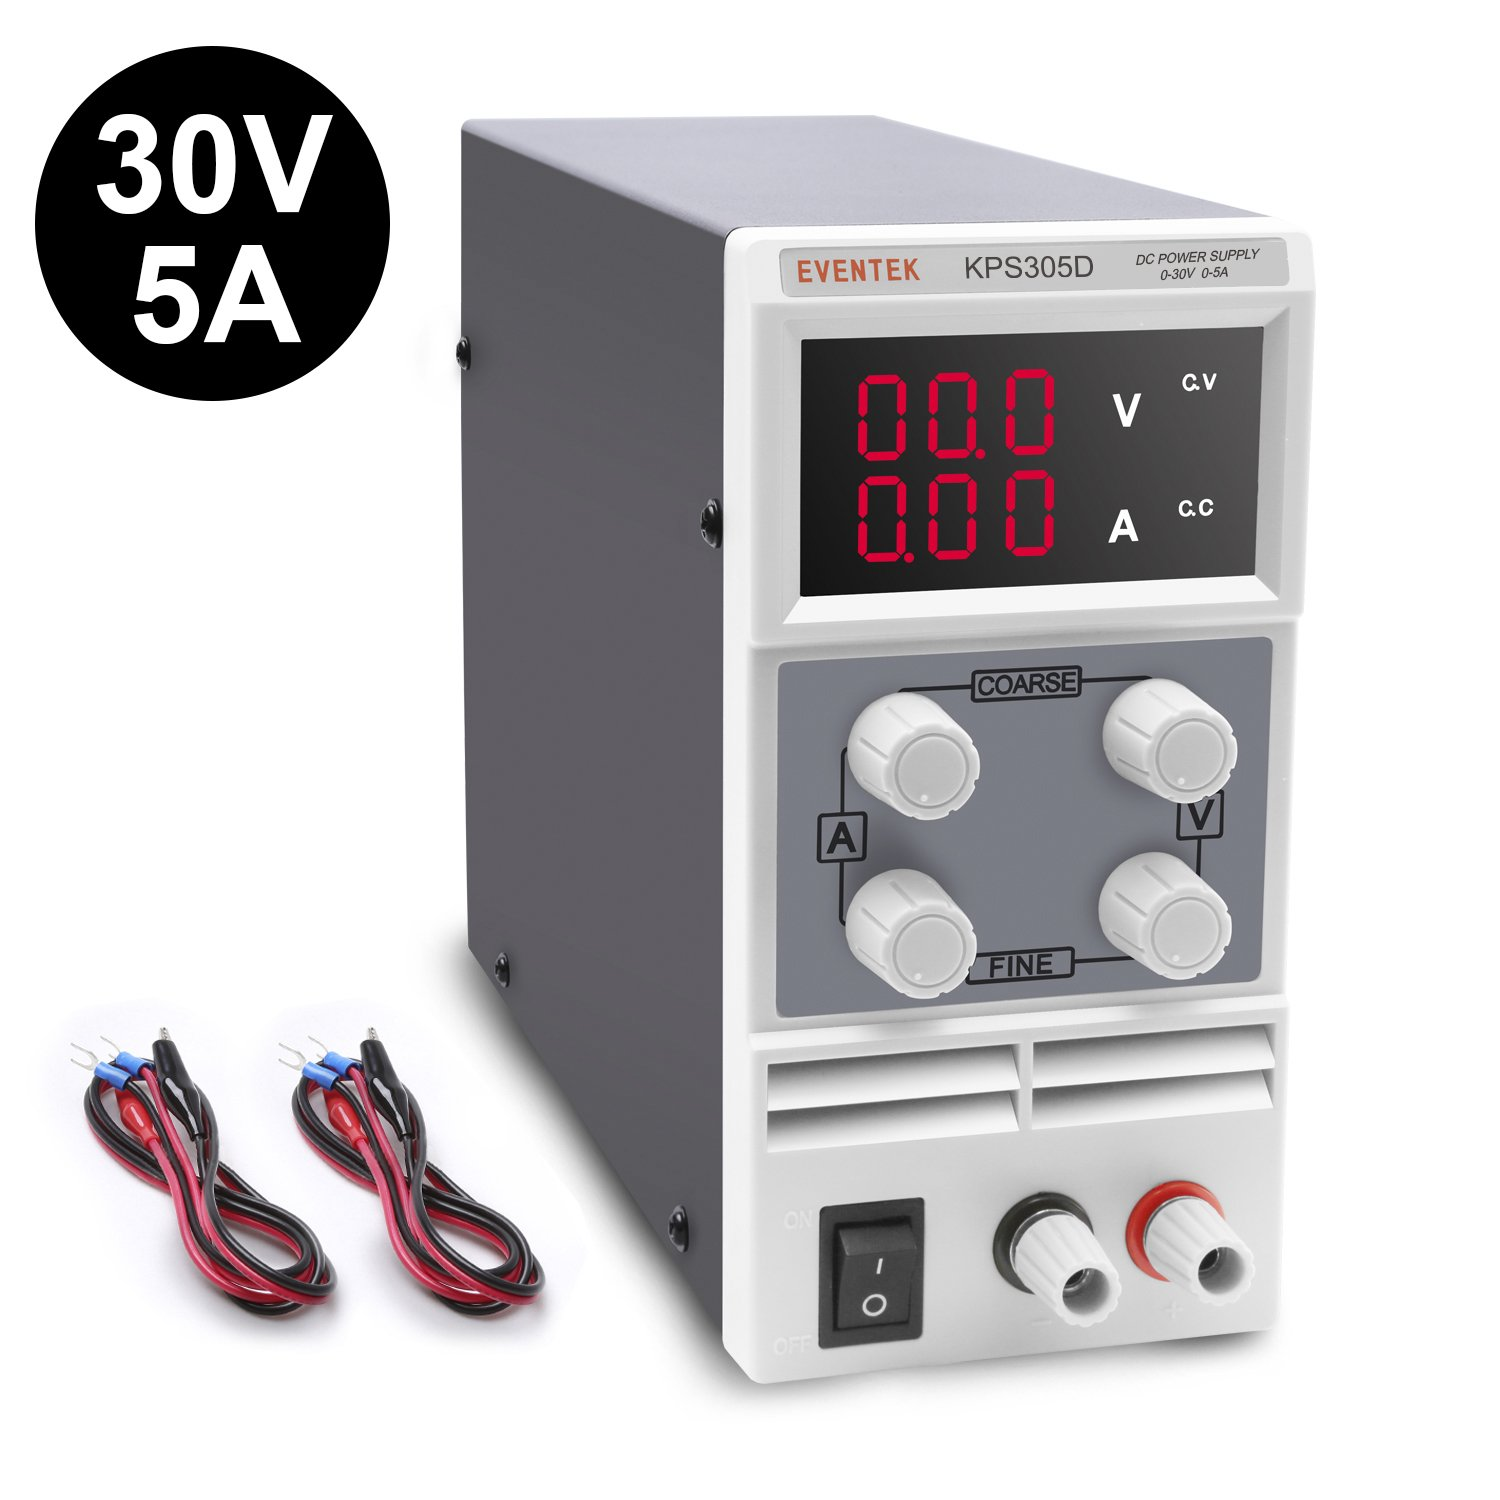 DC Power Supply Variable, Eventek KPS305D Adjustable Switching Regulated Power Supply Digital, 0-30 V 0-5 A with Alligator Leads US Power Cord